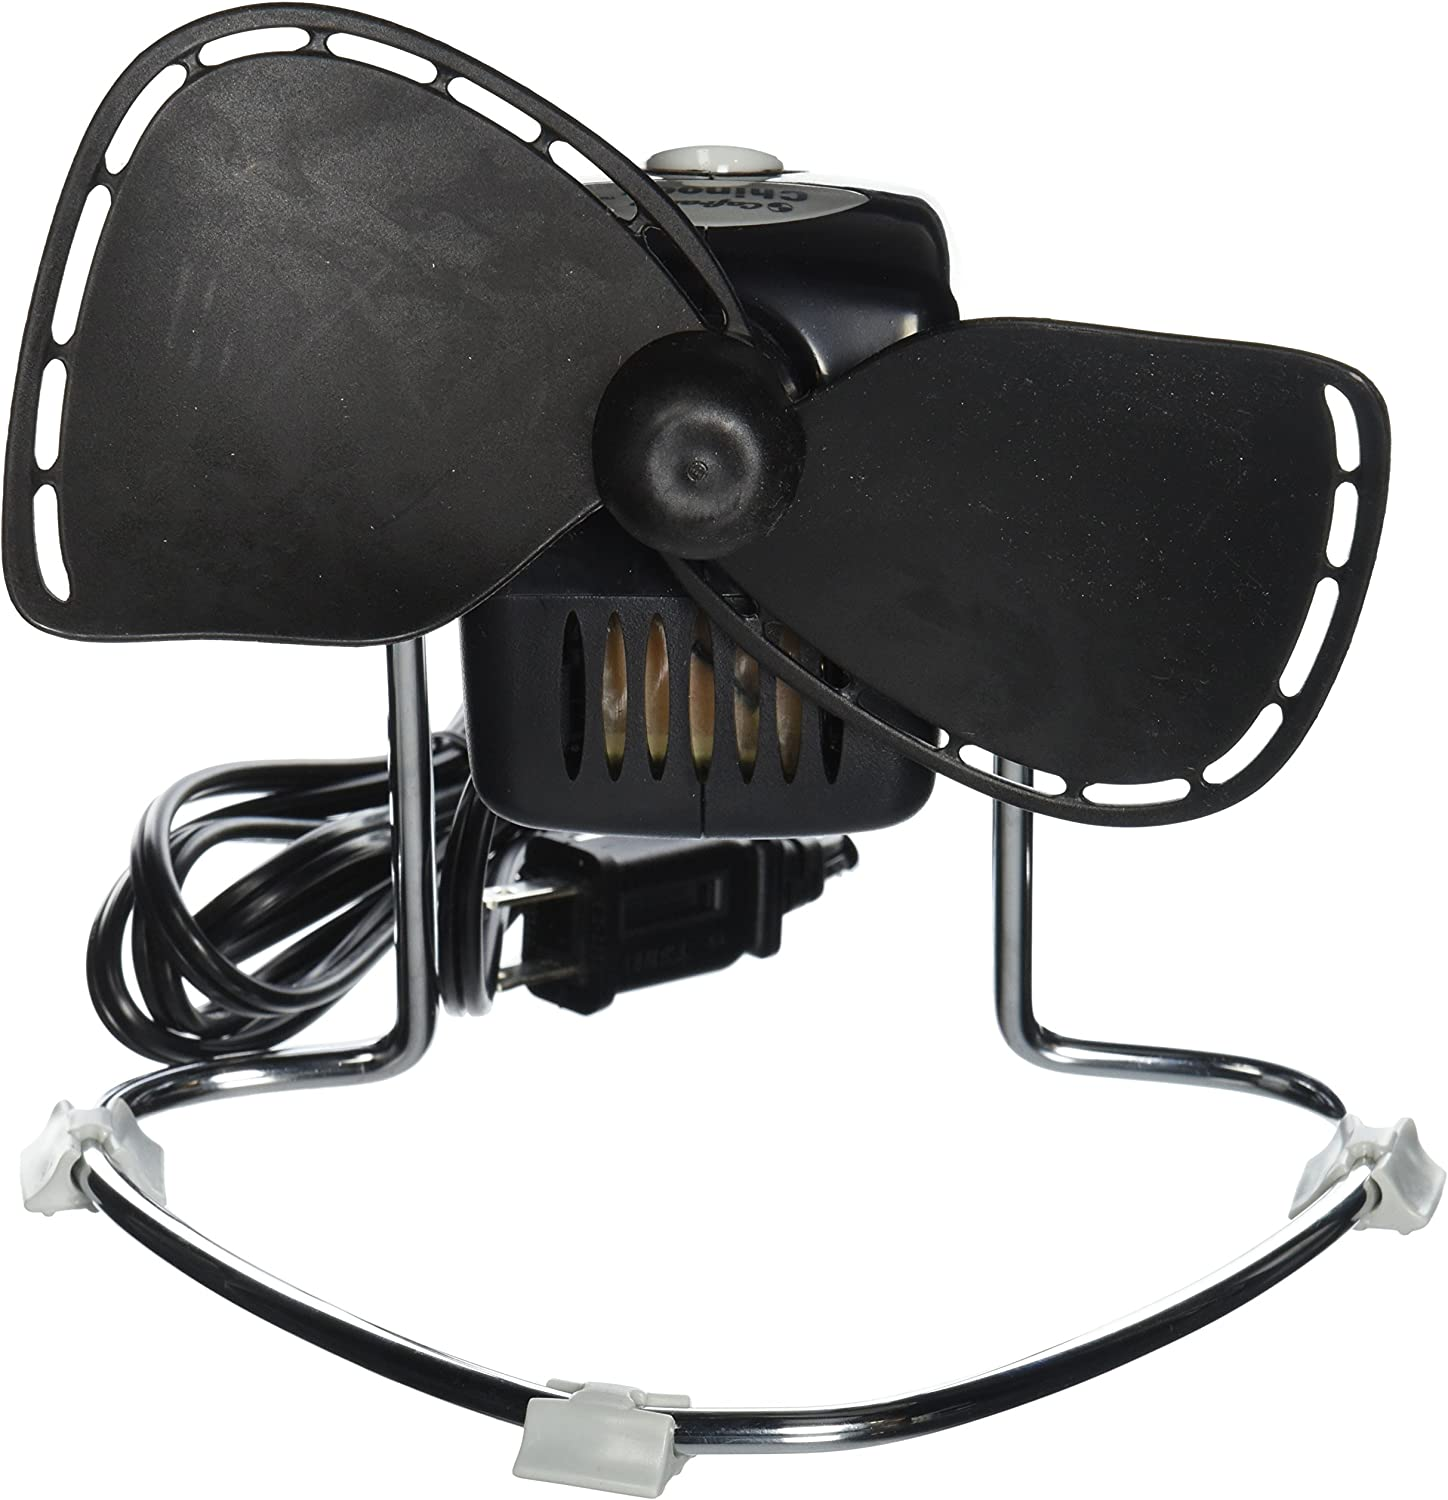 Caframo Chinook. 2-Speed Desk Fan. Cage Free, Easy to Clean. Canadian Made. Black